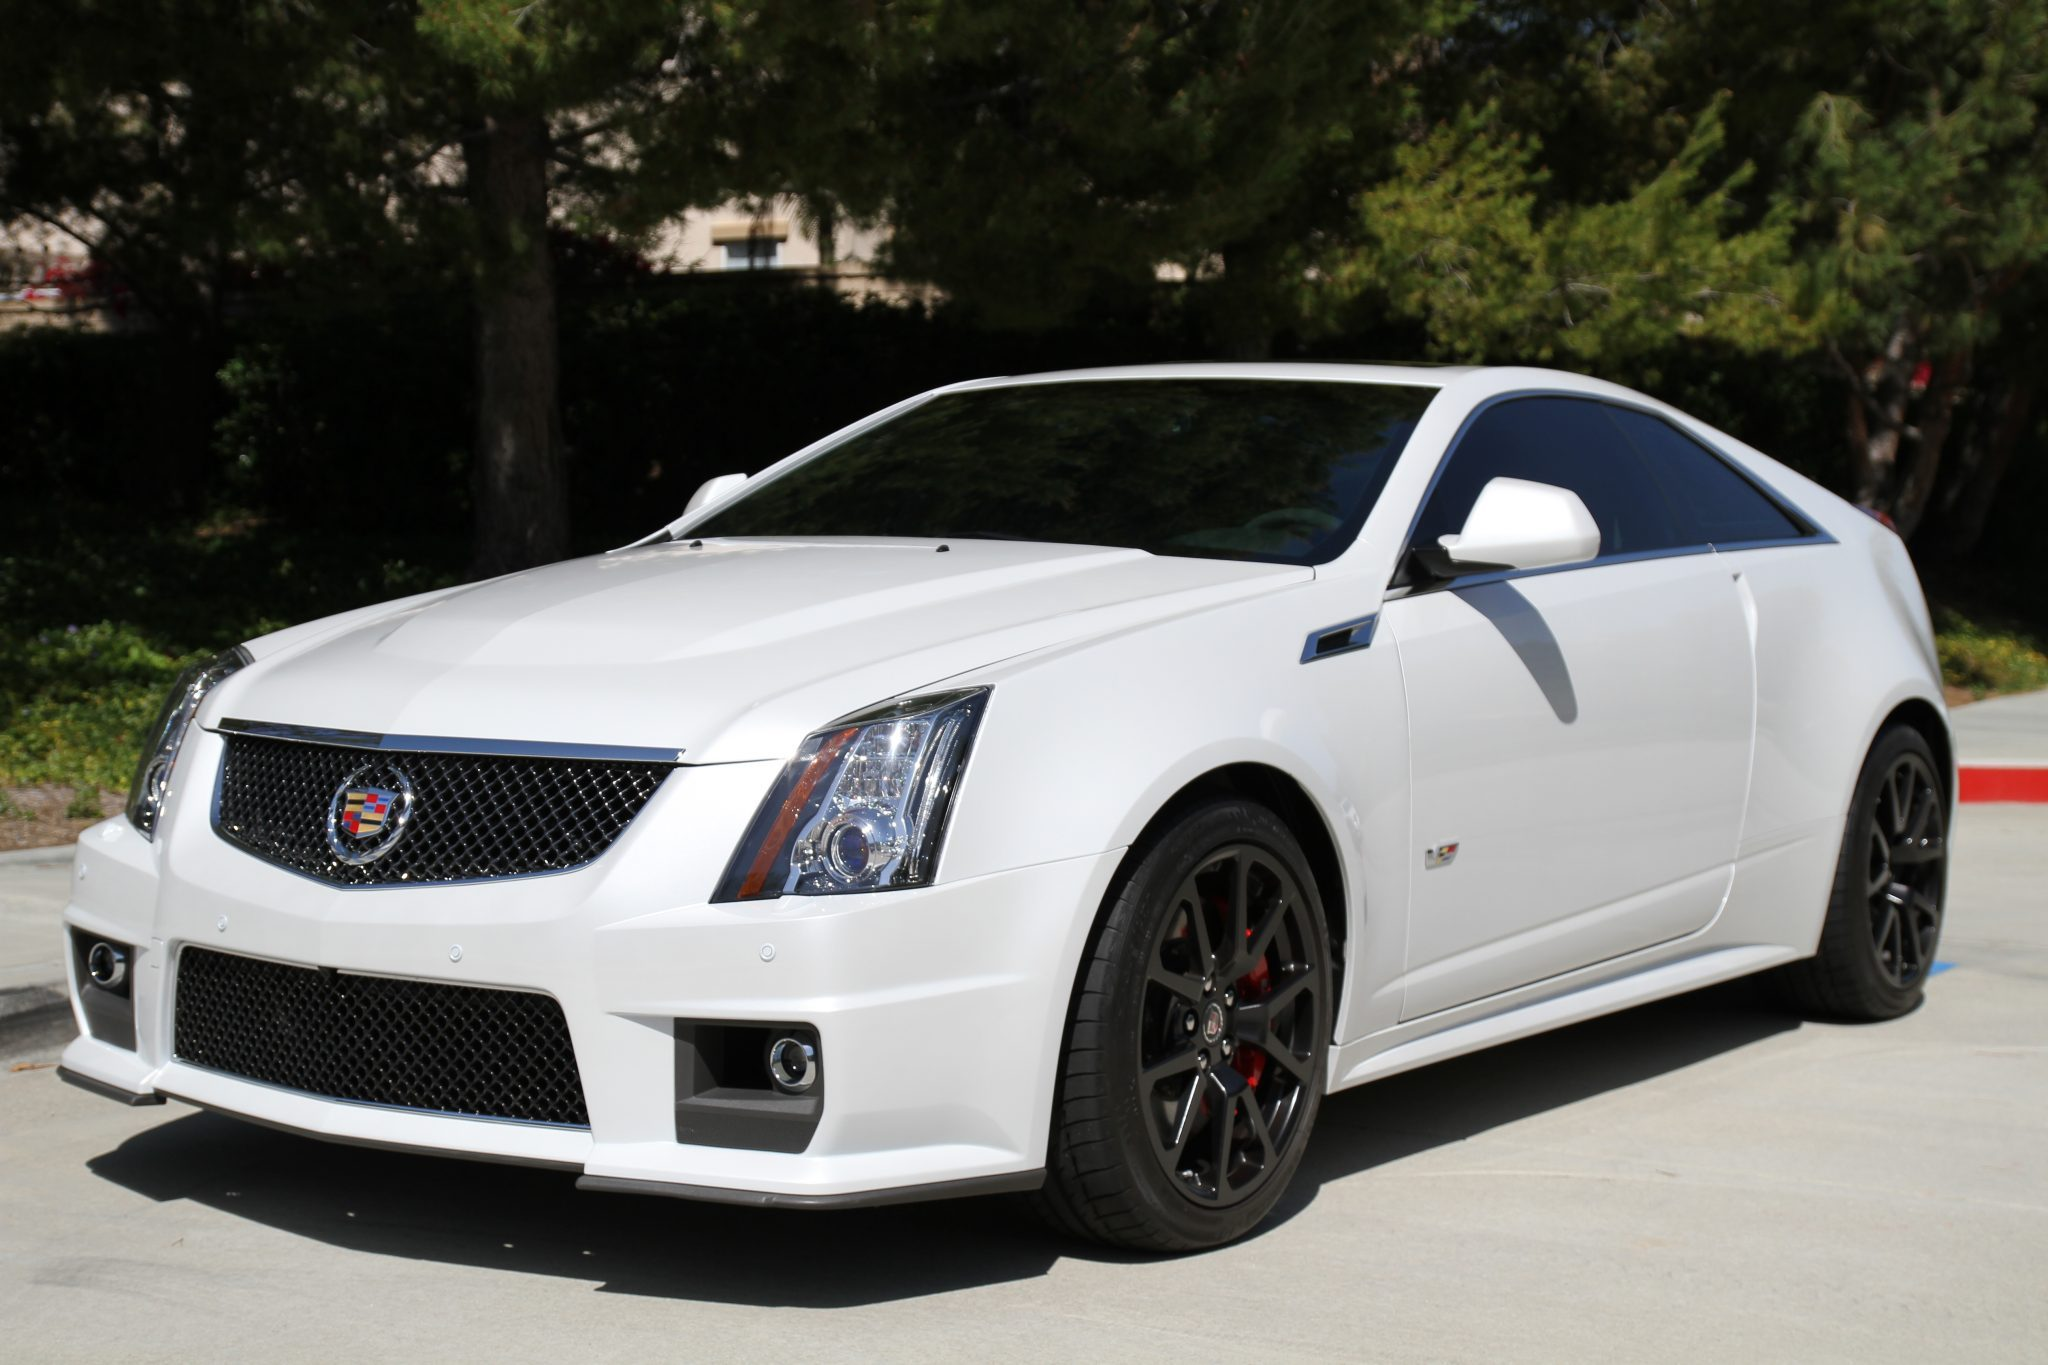 2011-cadillac-cts-v-coupe-crystal-white-tricoat-1.jpg